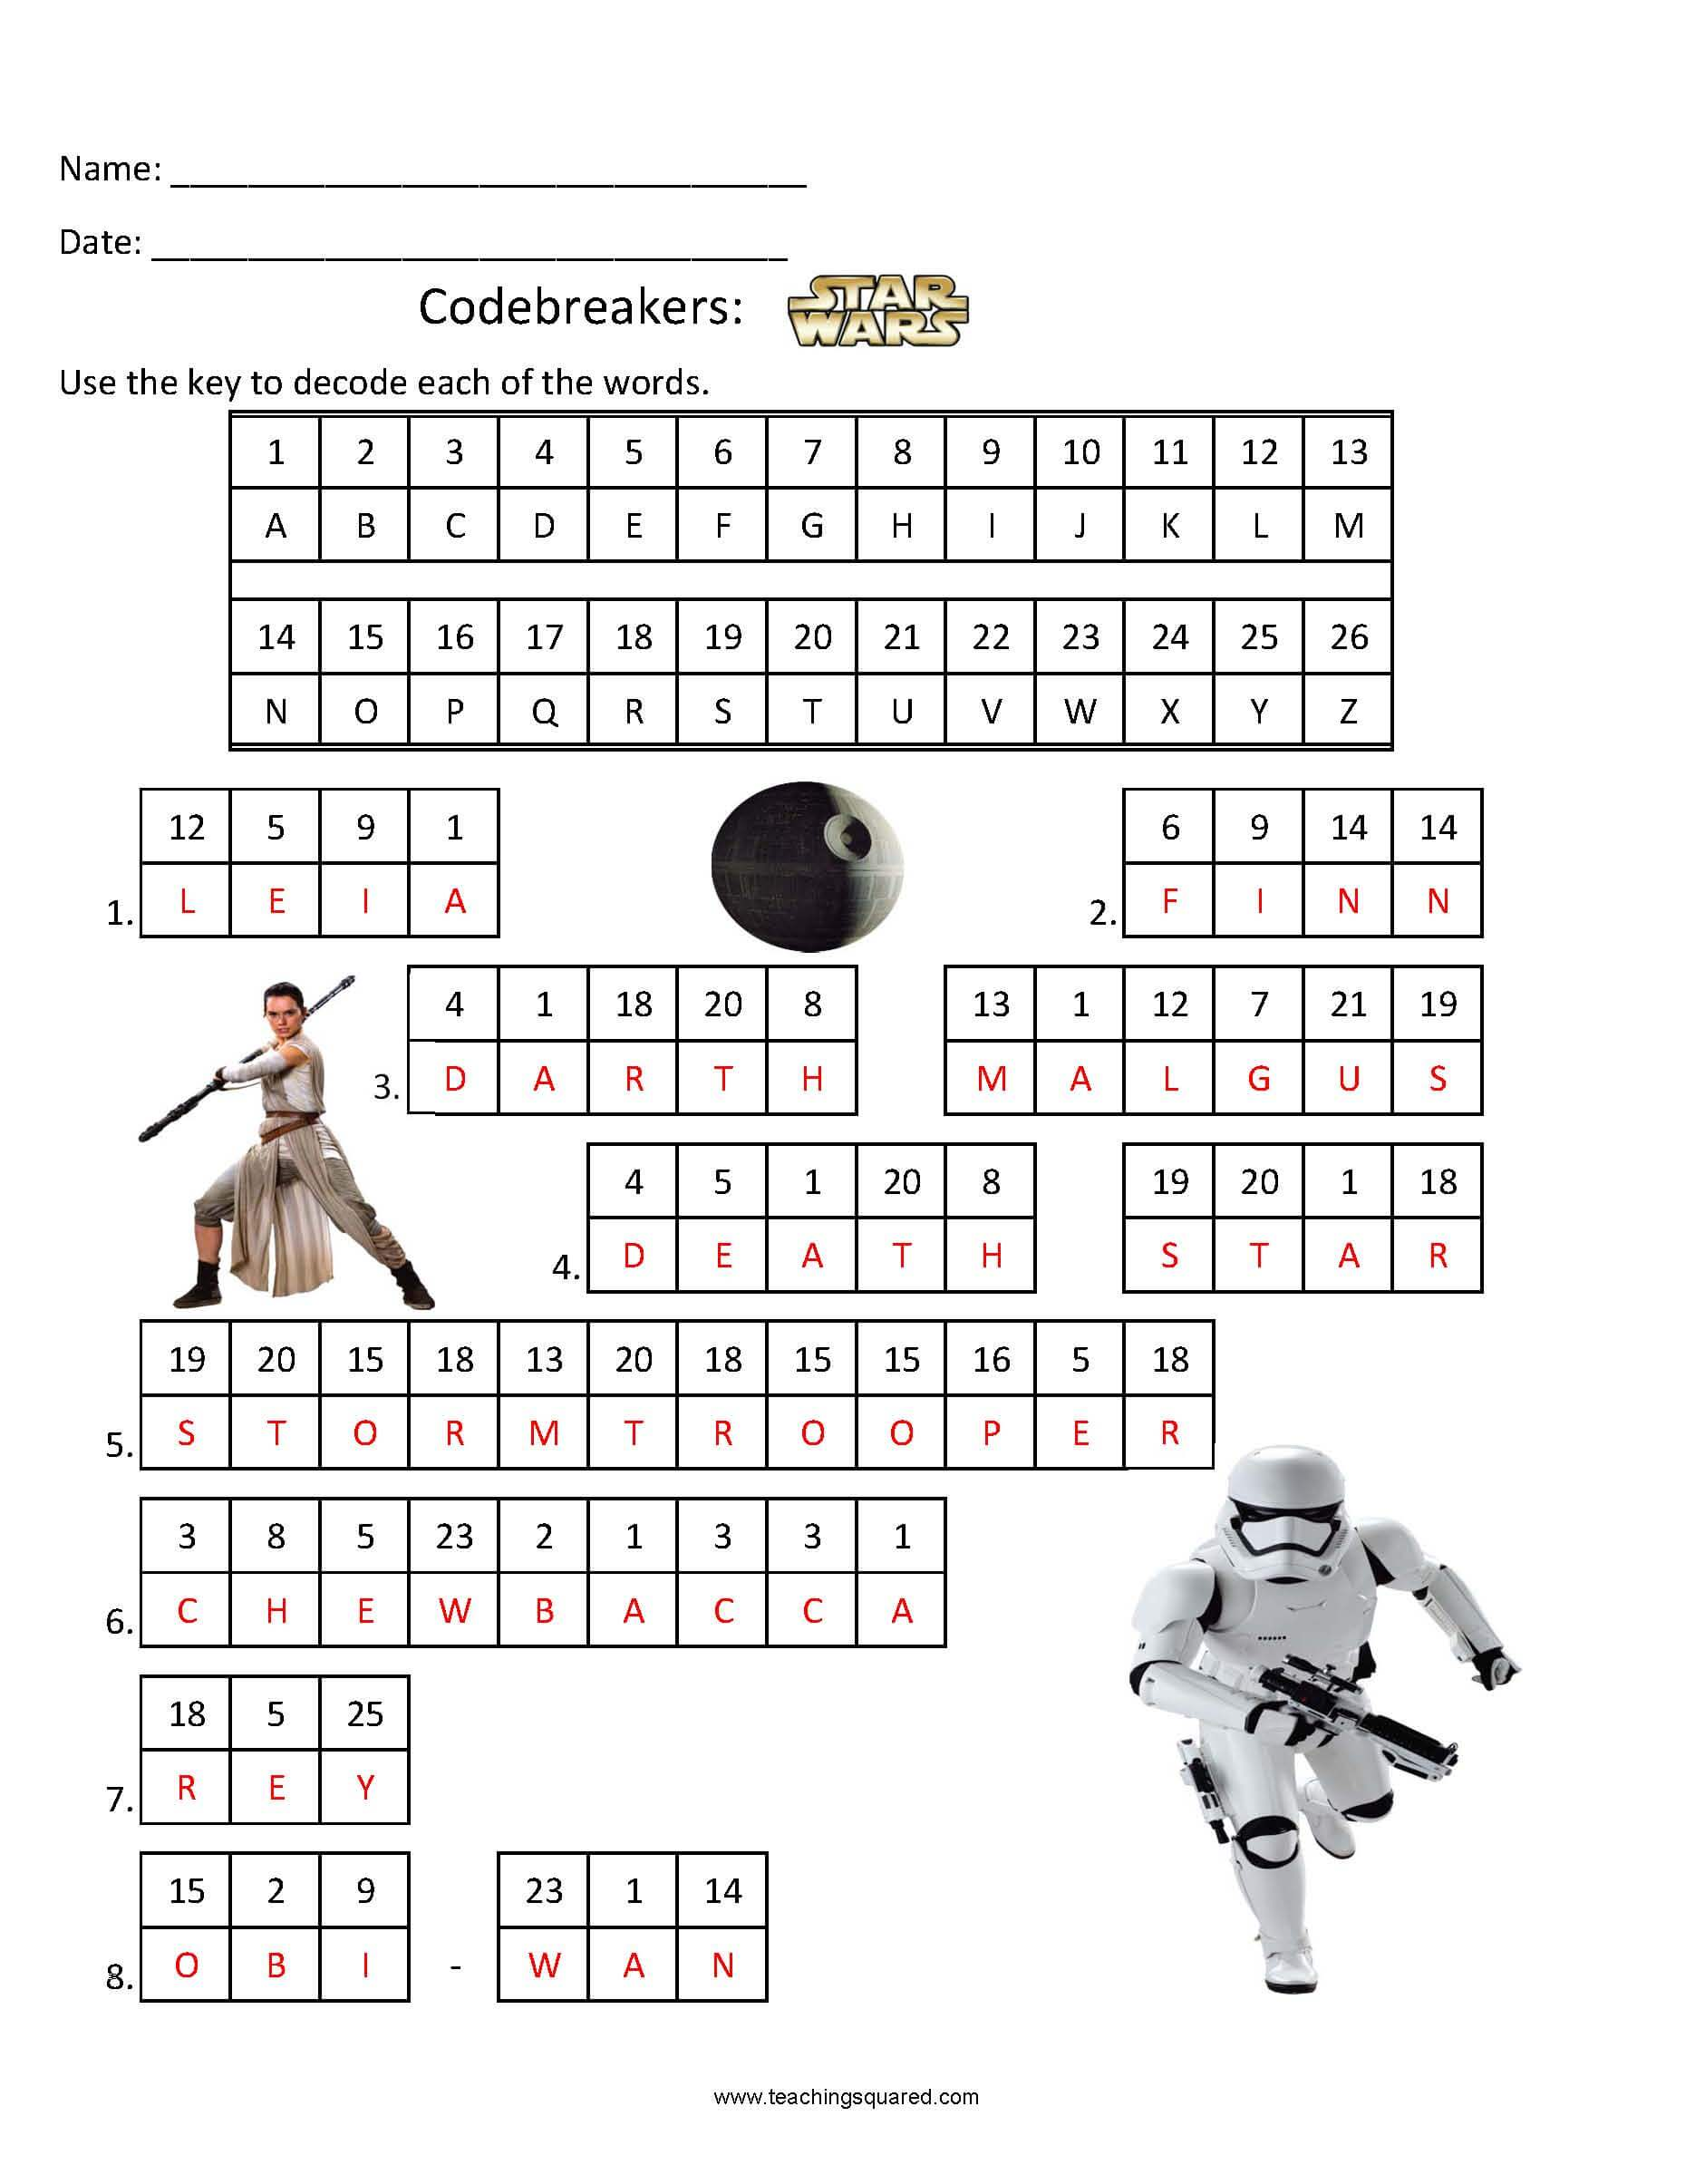 Codebreakers- Star Wars Fun Puzzle for kids